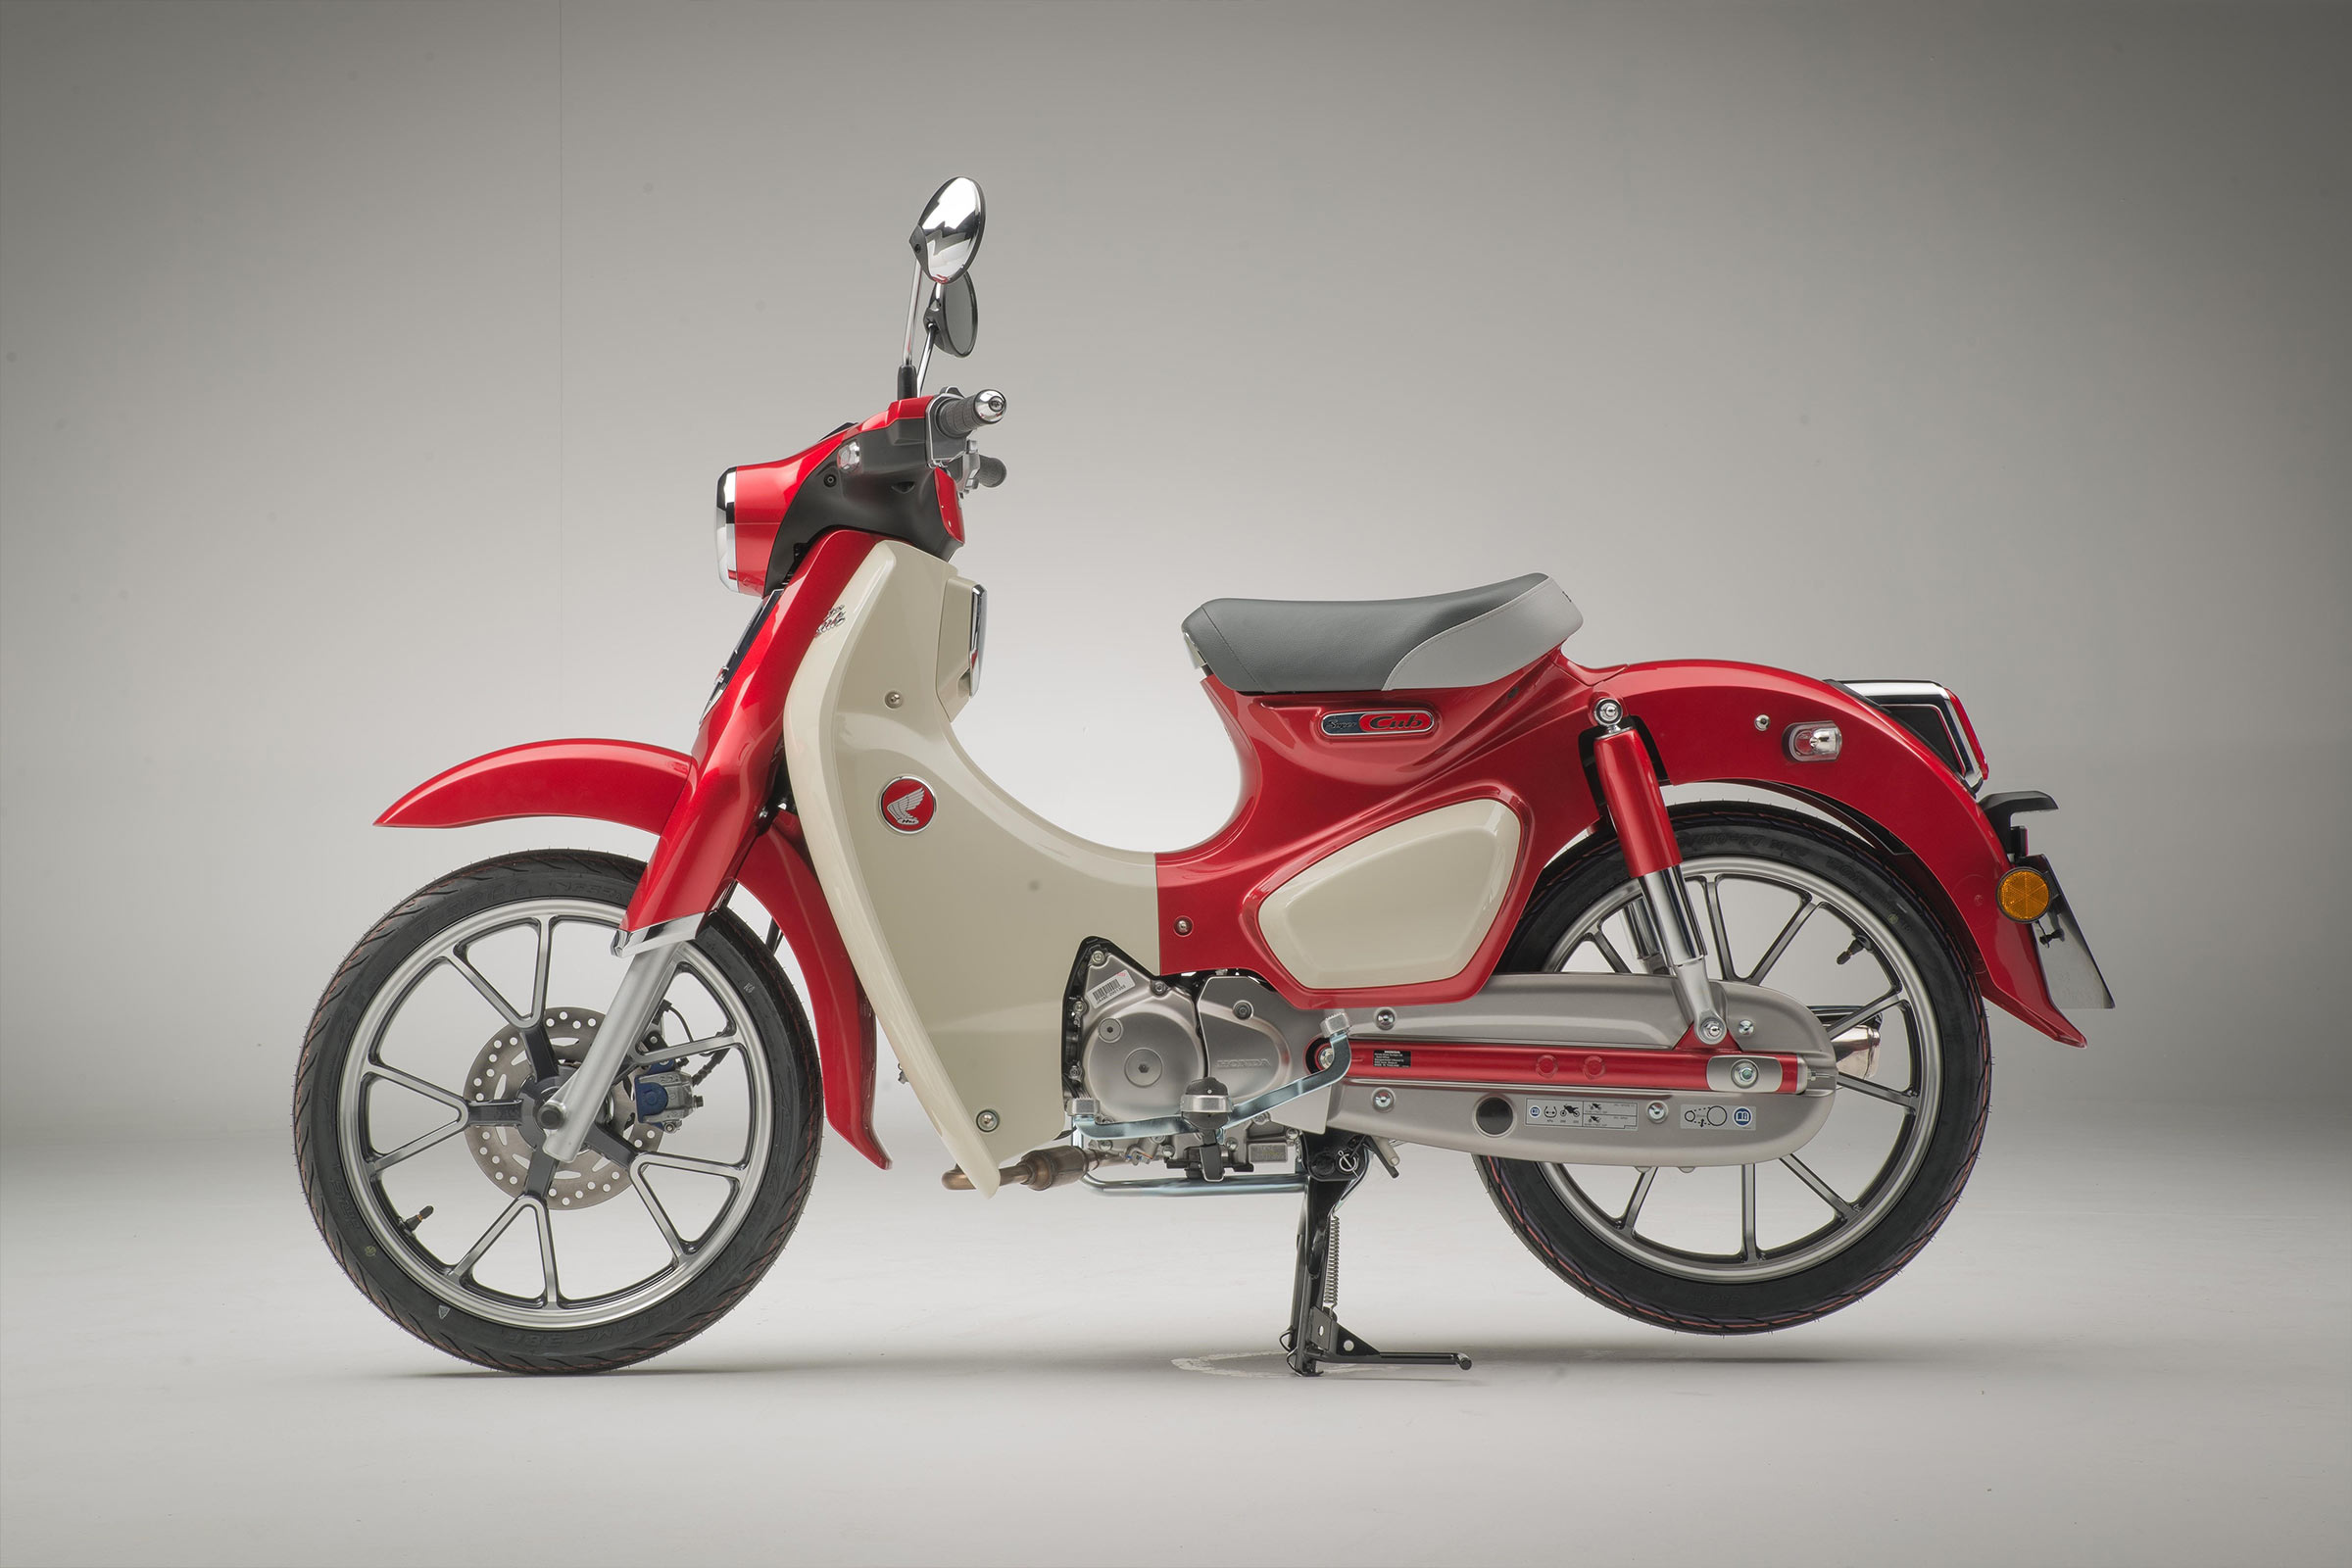 2021 Super Cub C125 Abs Overview Honda